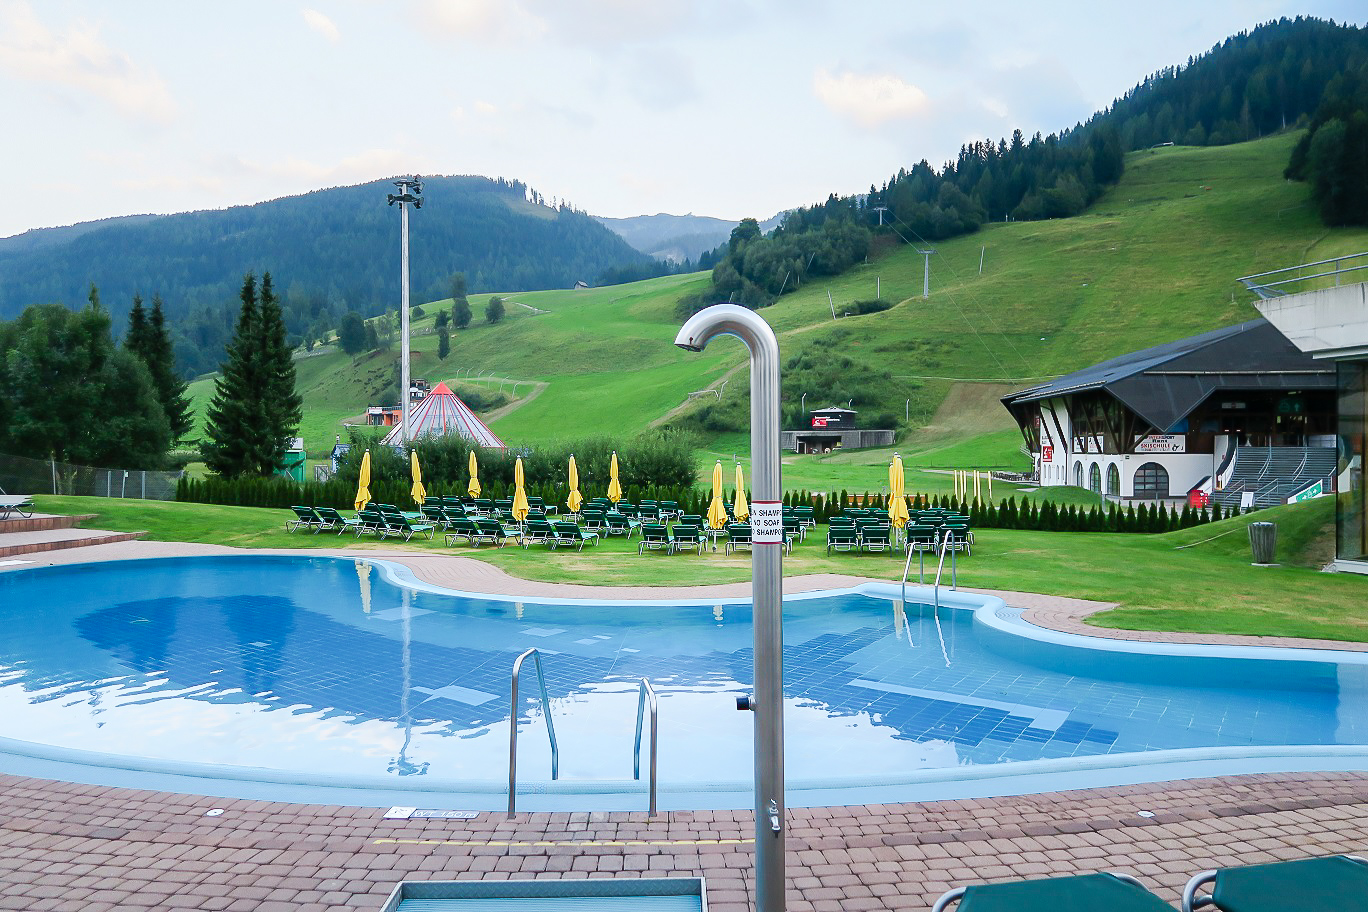 miss_claire_terme_romerbad-1038